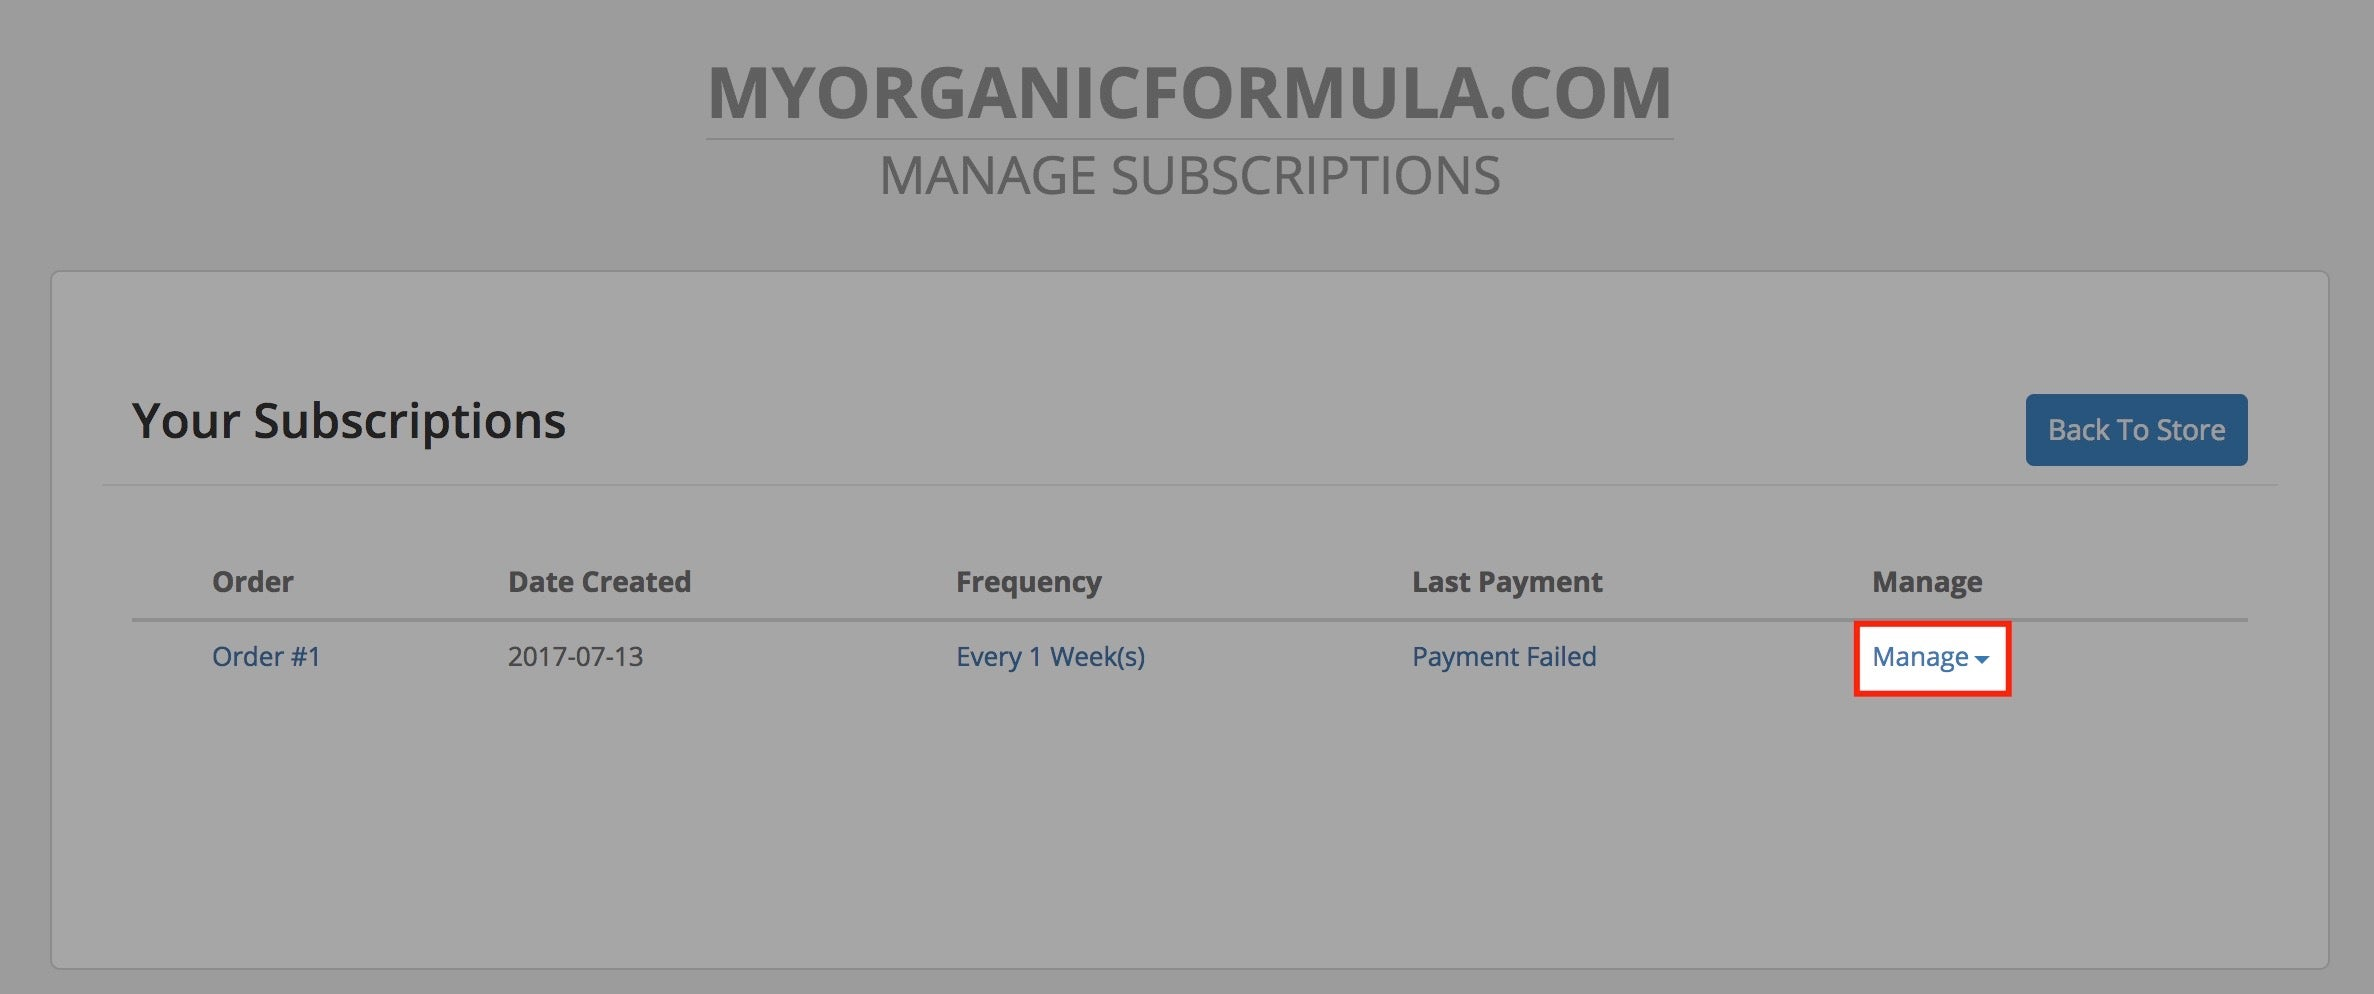 Subscription Manage Button